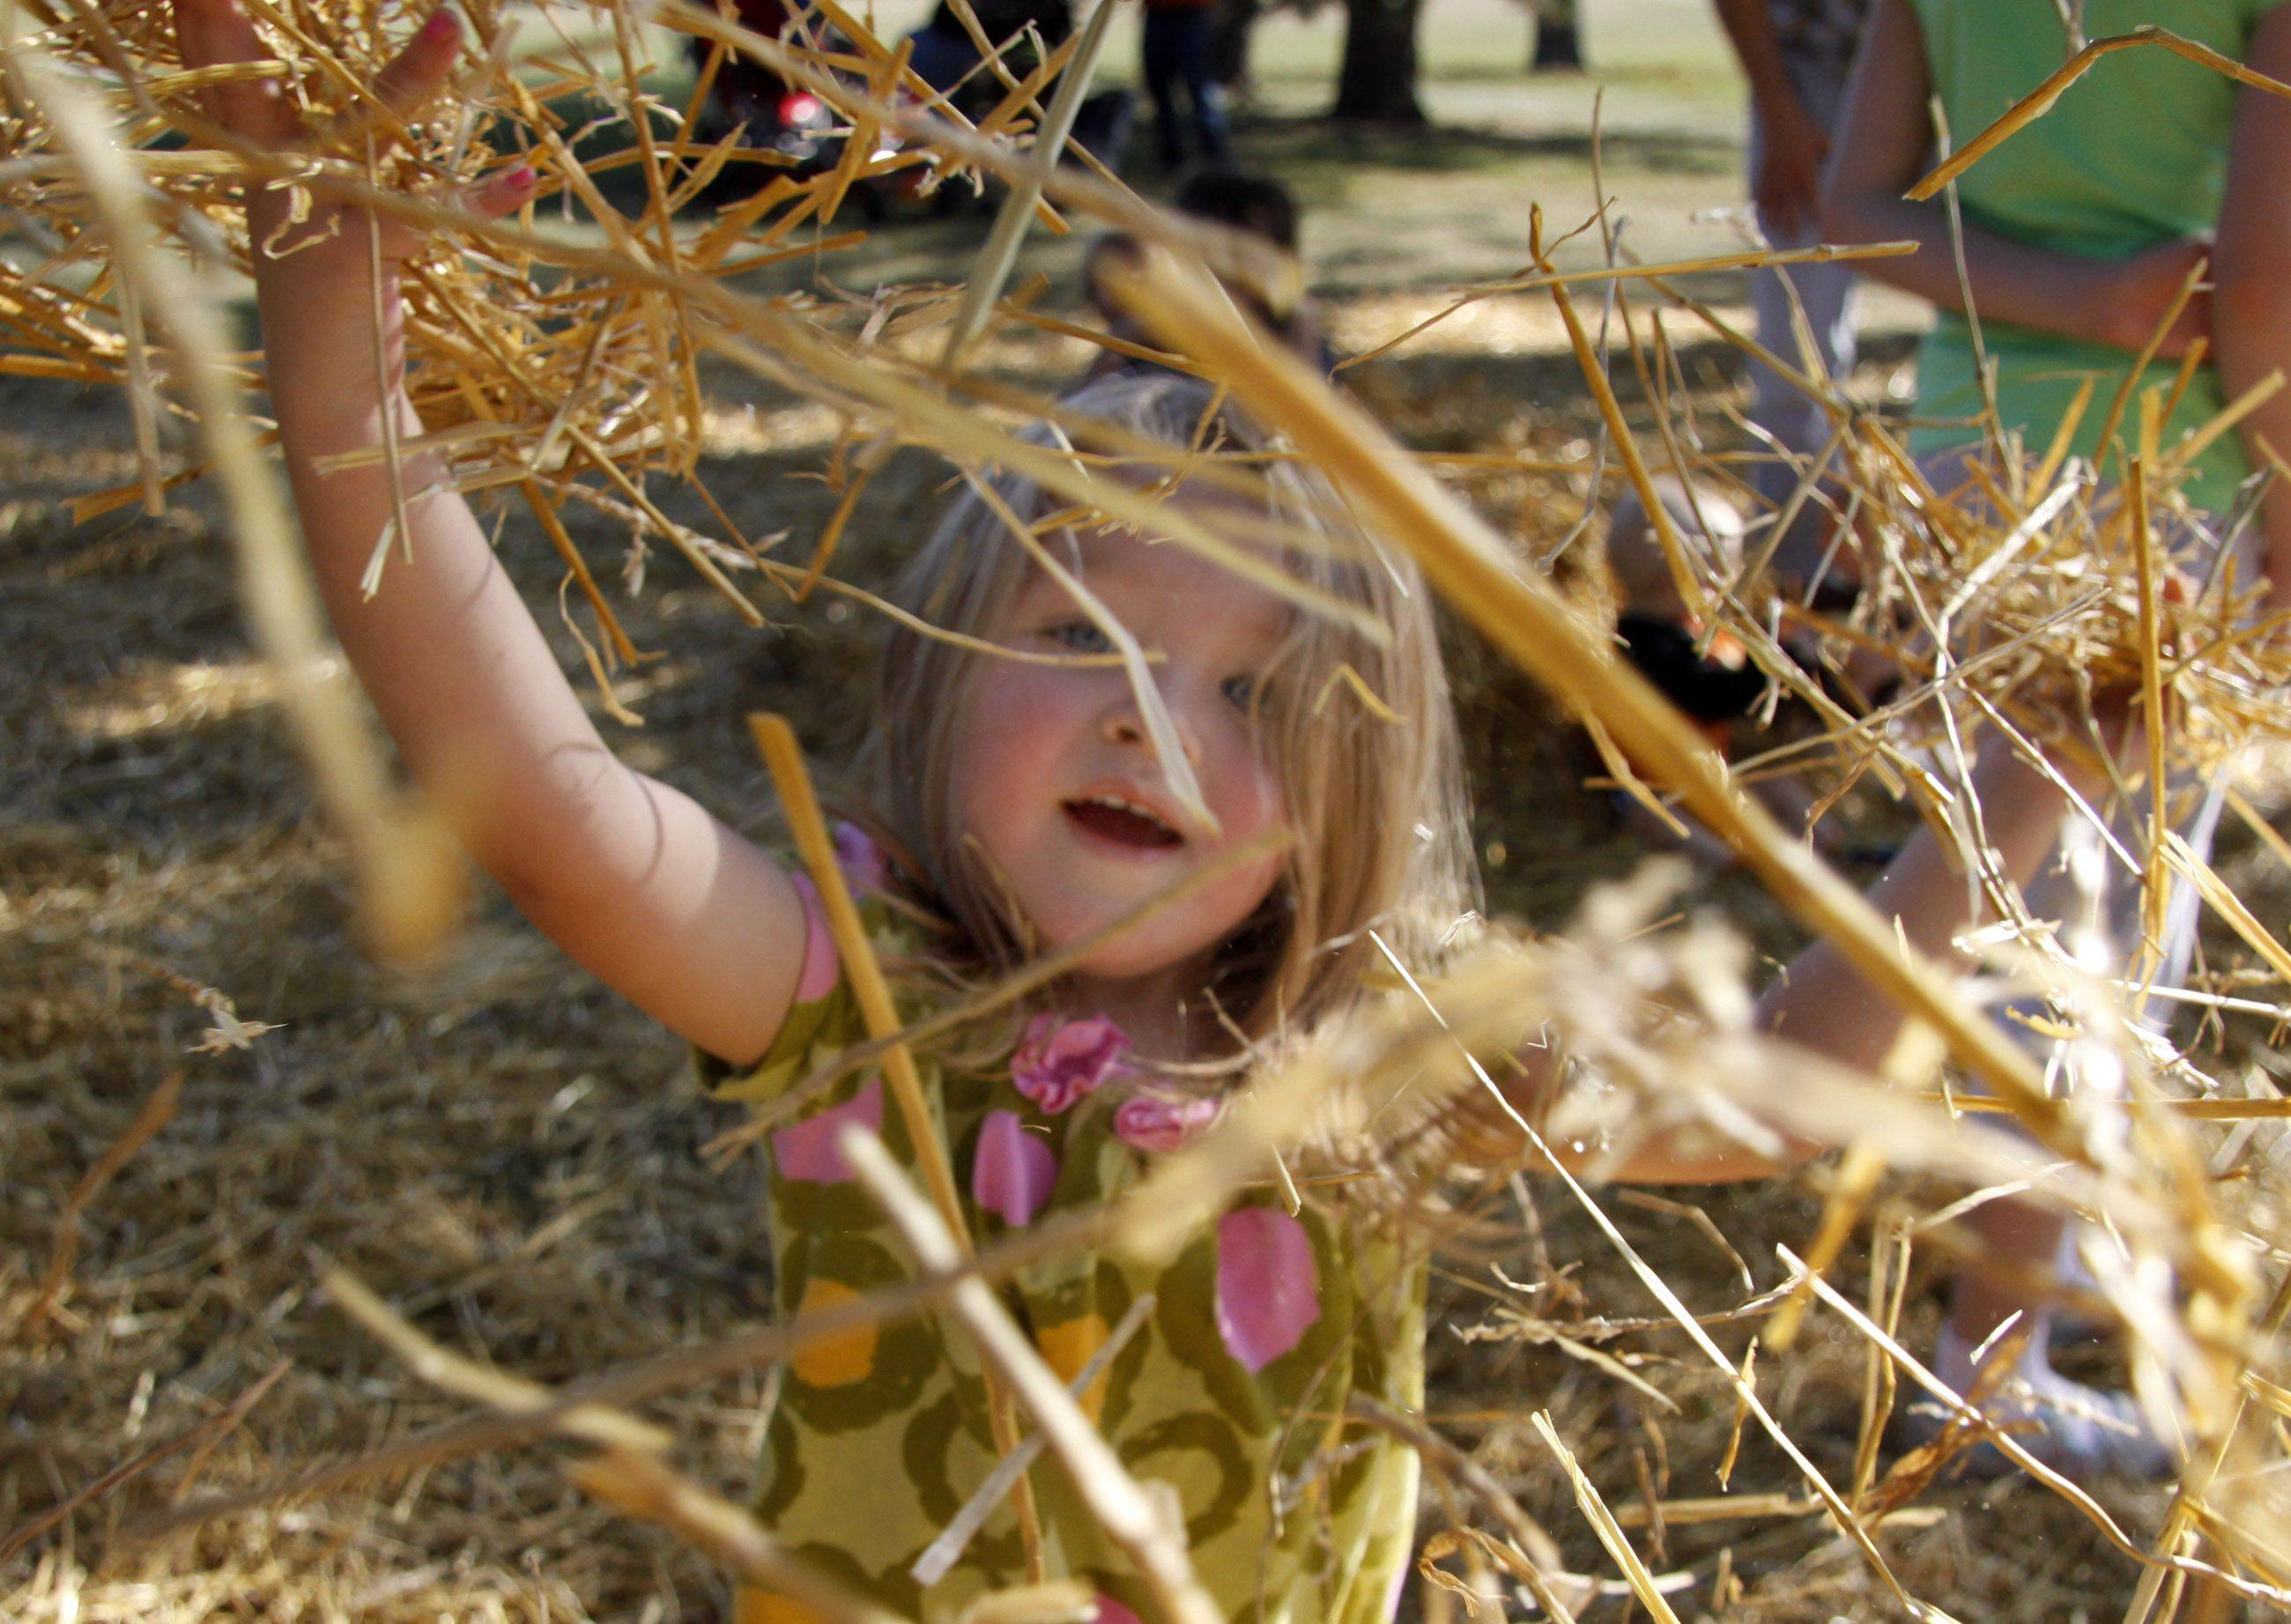 Natalie Elste, 2, of Lombard plays in the hay at Lombard Park Districts fall festival Saturday at Lombard Common Park.